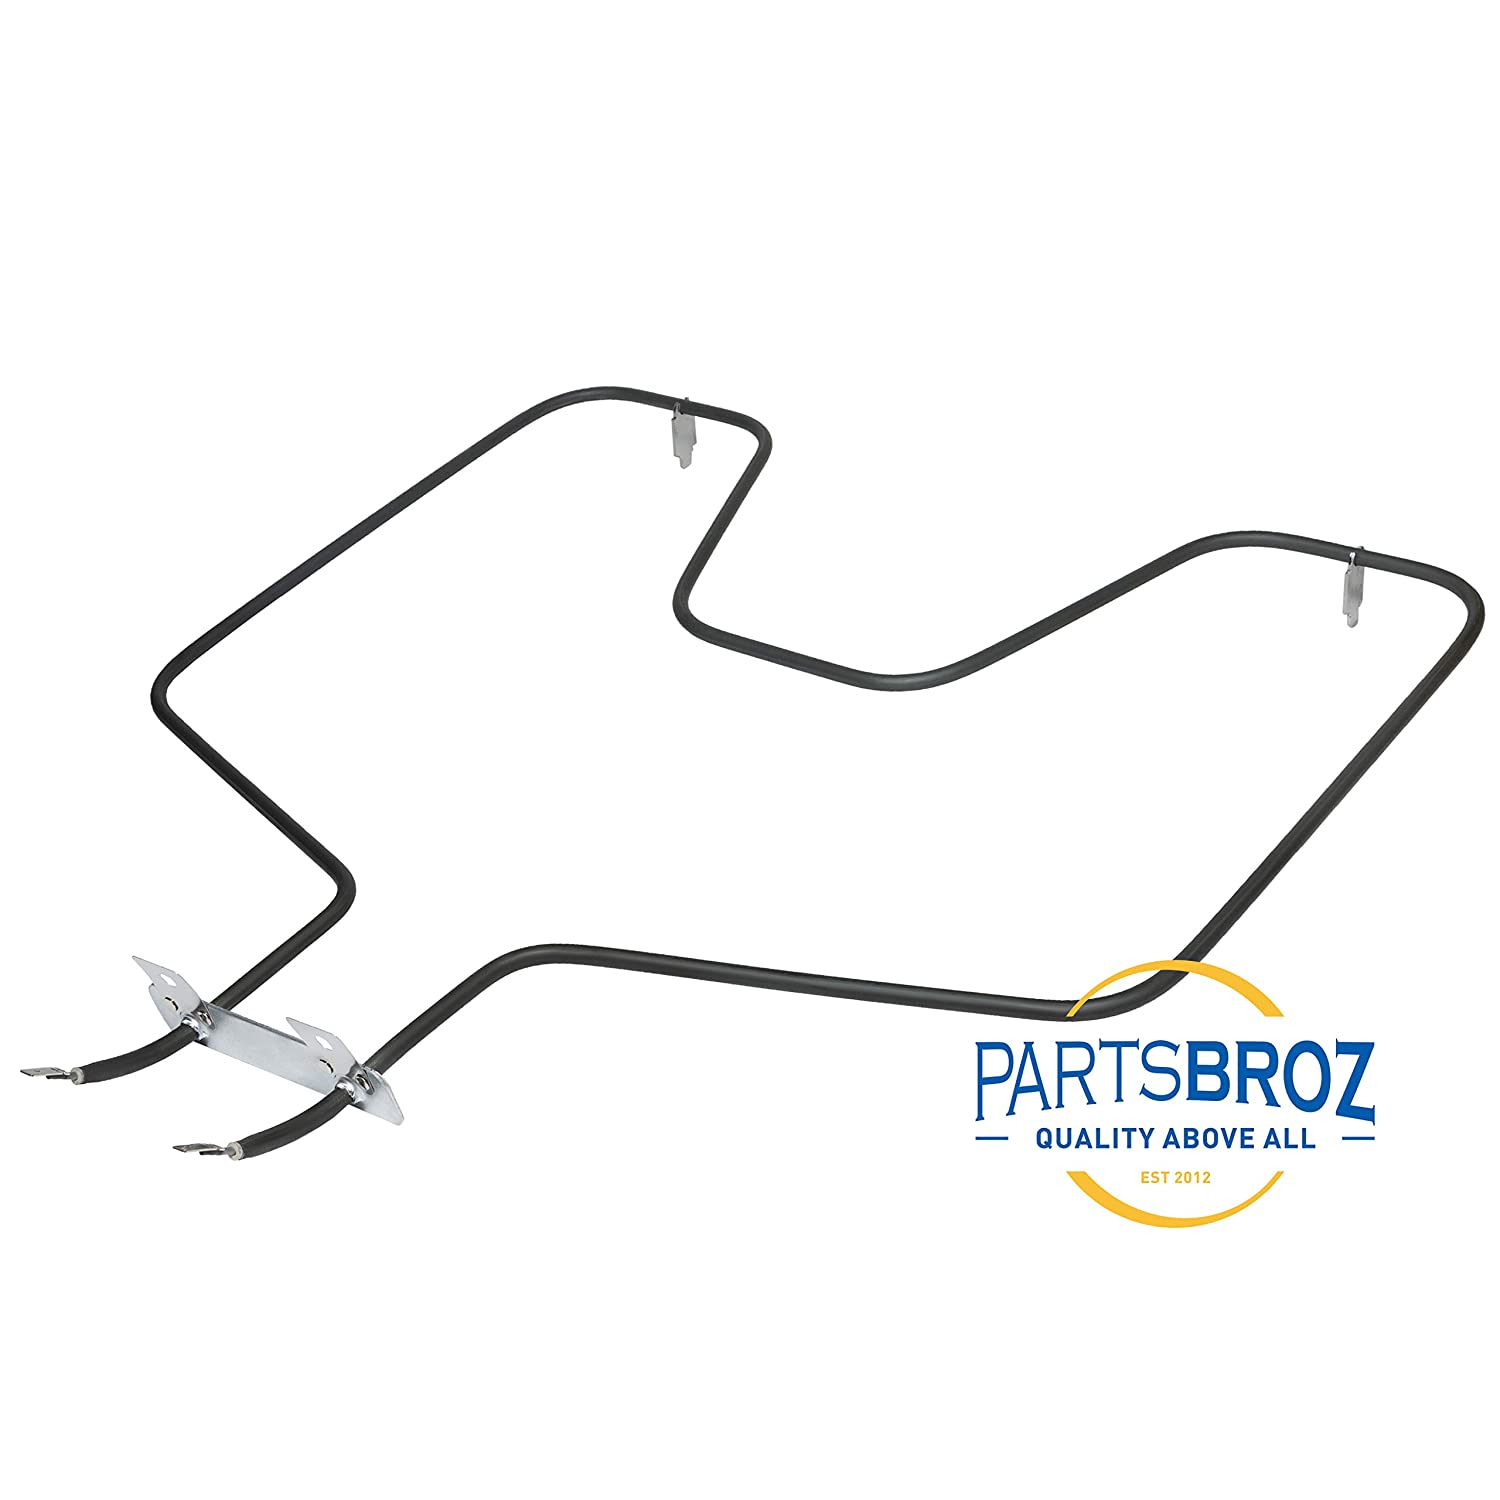 EA249285 AH249285 WB44T10010 Bake Element for General Electric Ovens by PartsBroz PS249285 770549 Replaces Part Numbers AP2030996